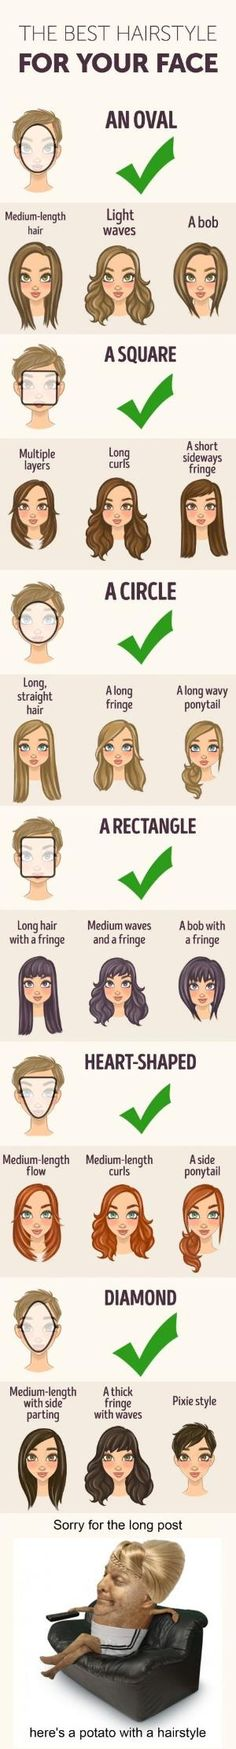 The best hairstyle for your face shape. by thelma